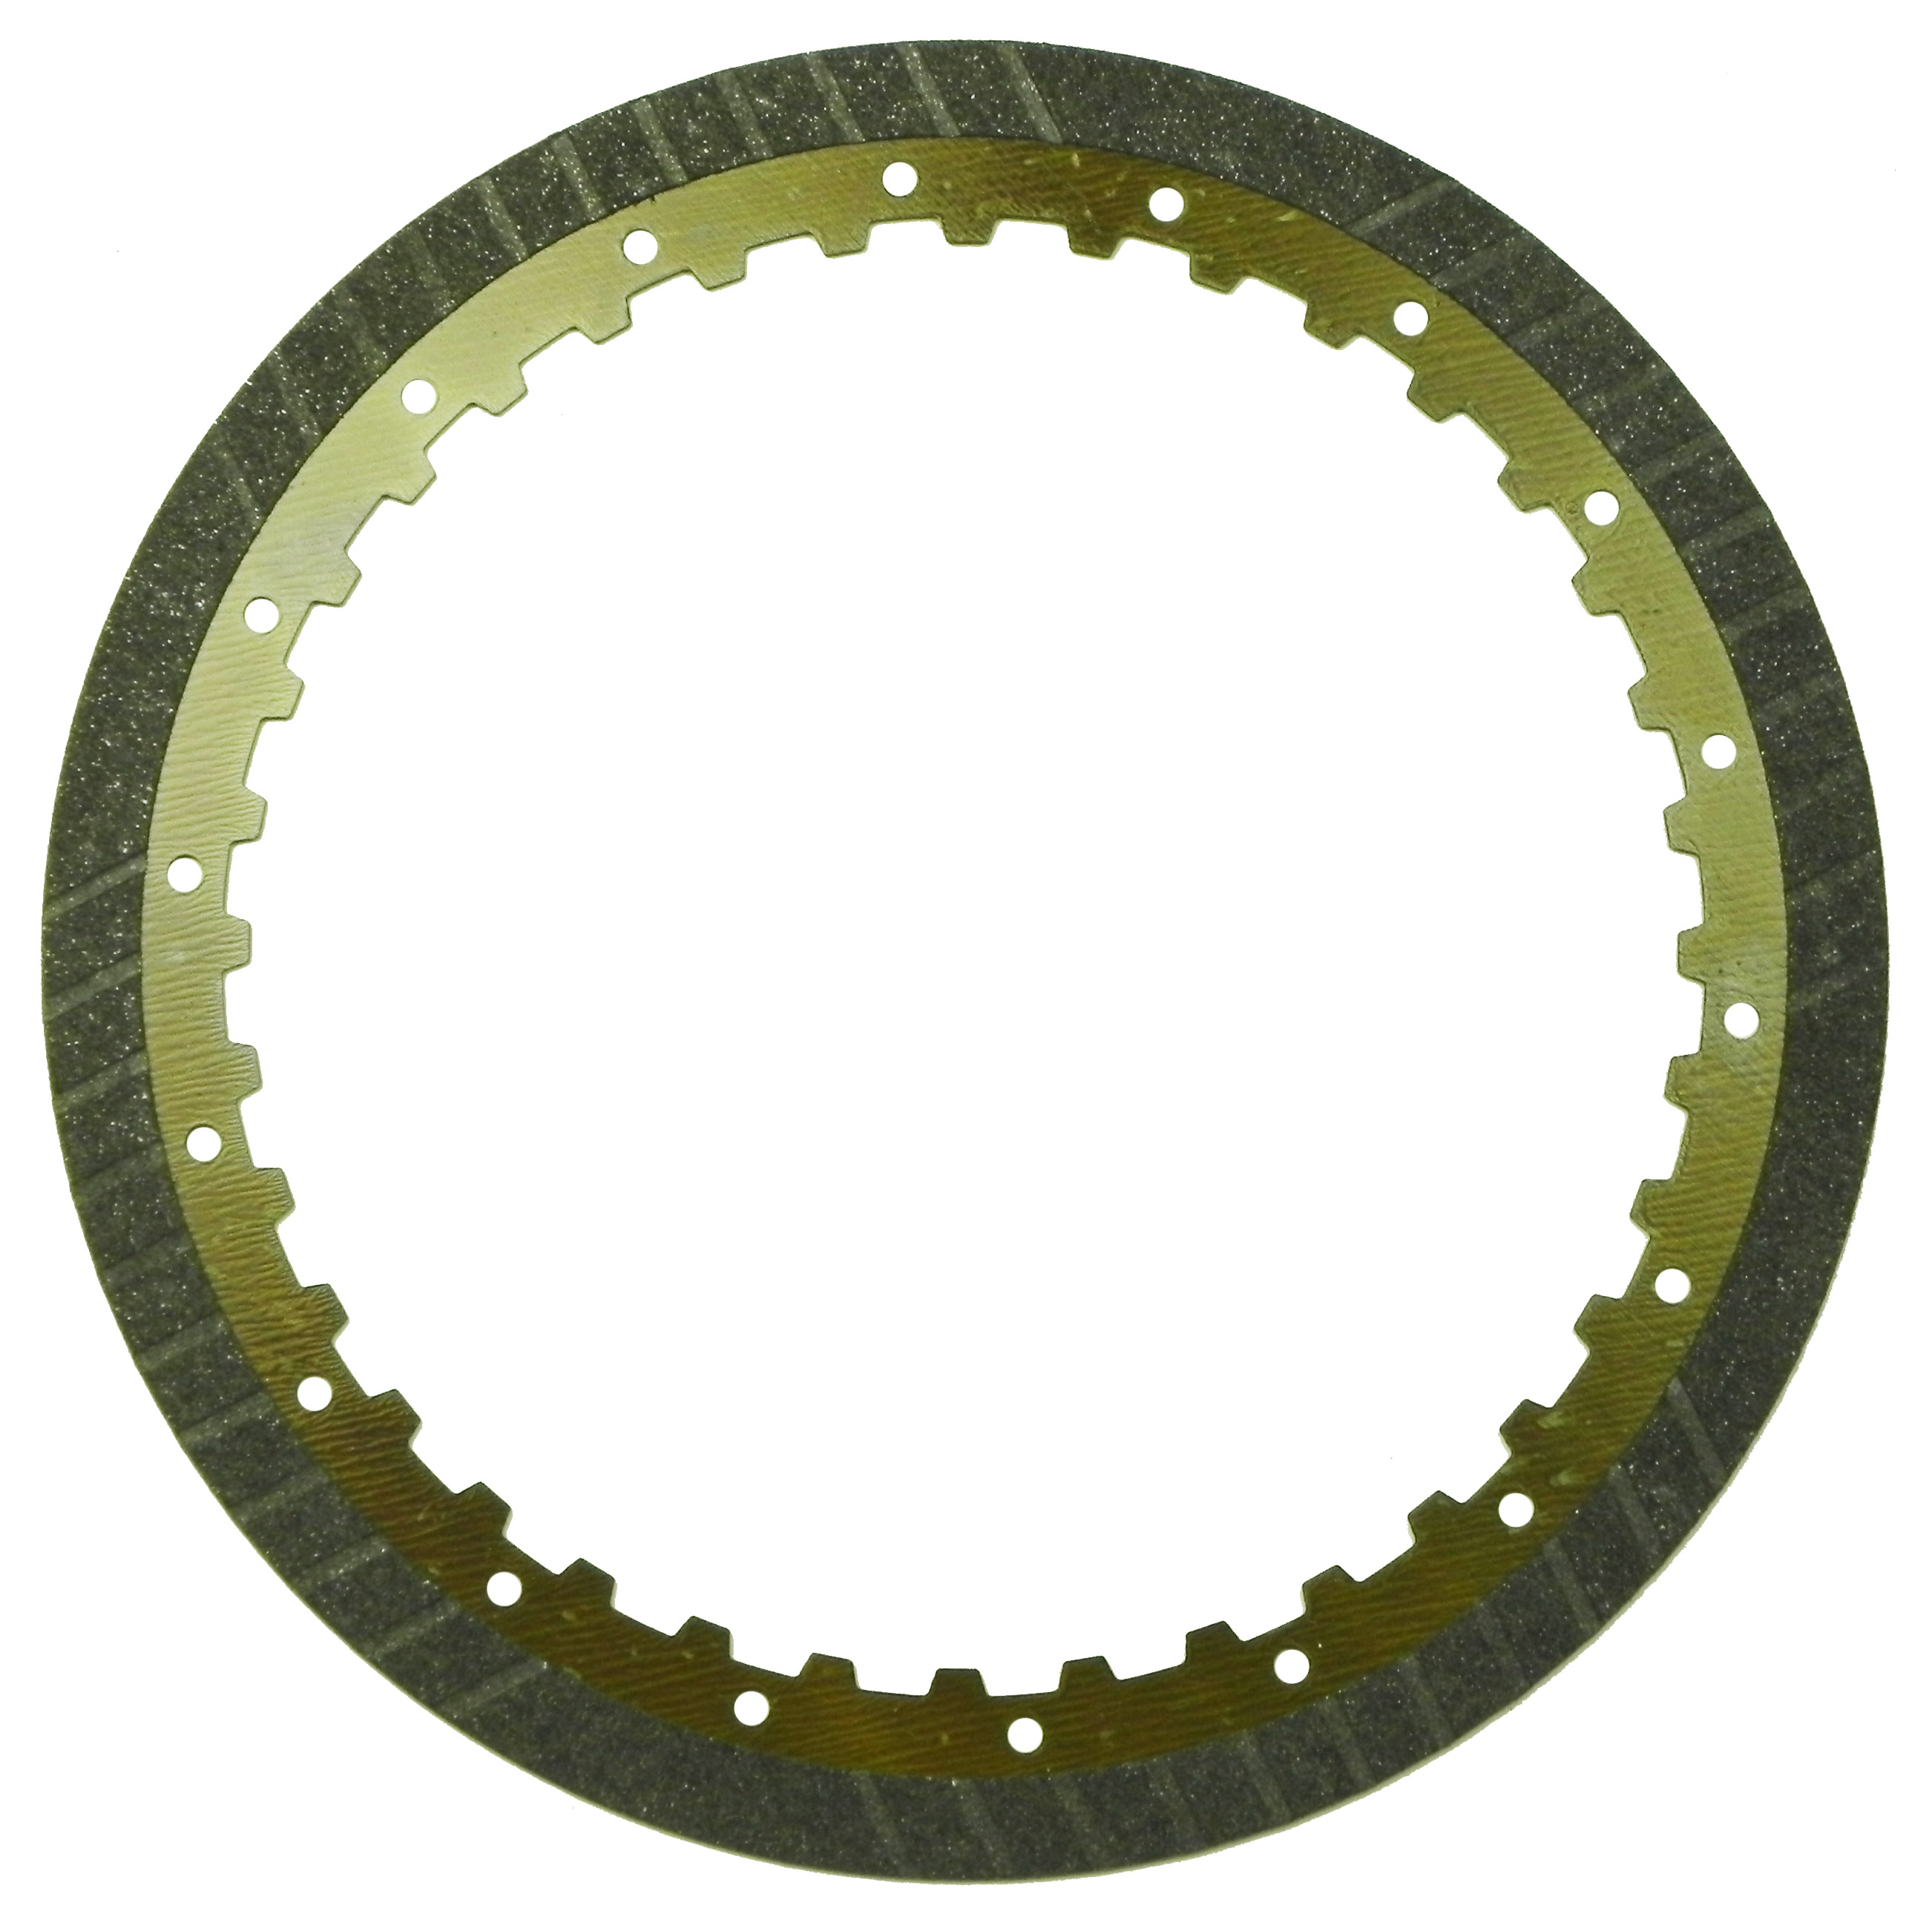 R560645 | 2009-ON Friction Clutch Plate High Energy Underdrive Brake High Energy